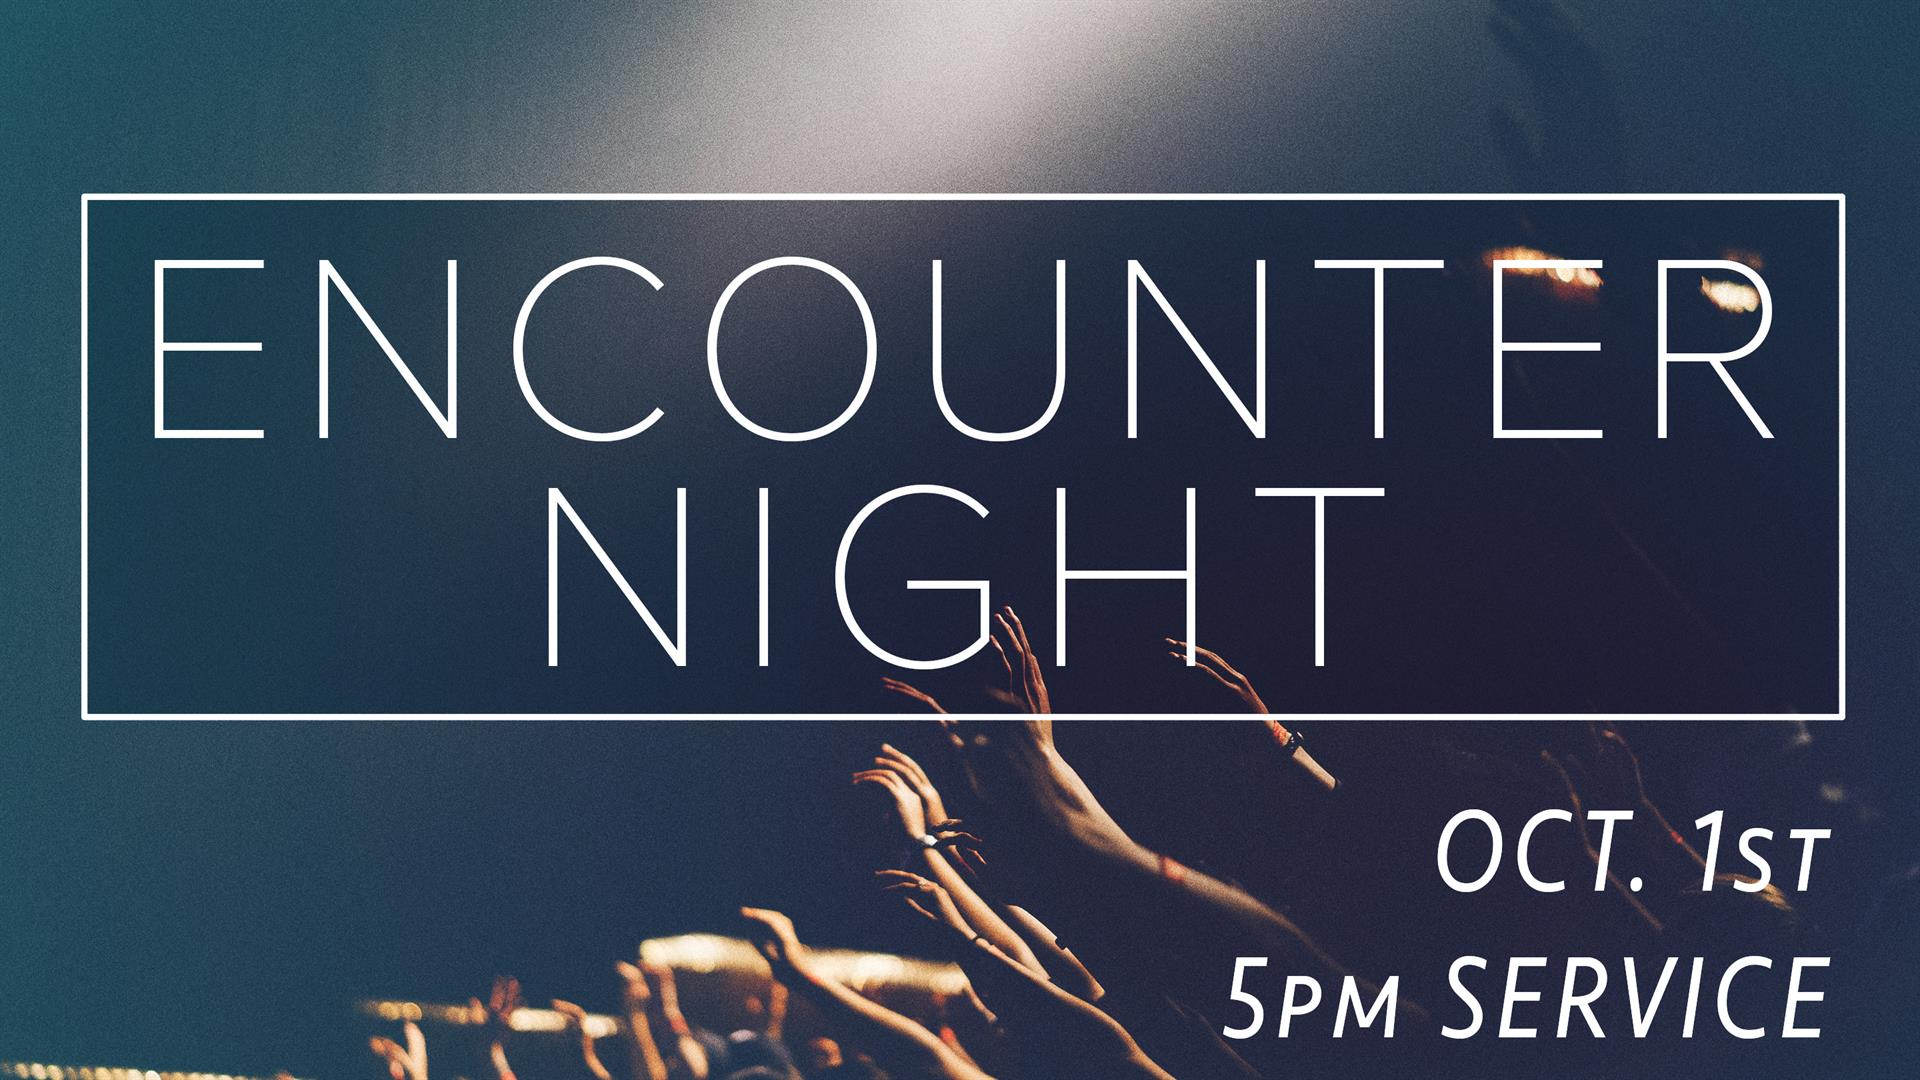 Come to Encounter Night on Sunday Night, October 1st as we press in, and go deeper to experience the power of the Holy Spirit. This will be a great night of ministry as we pray for the Baptism in the Holy Spirit and other spiritual gifts. We will have a special guest, Pastor Doug McAllister.